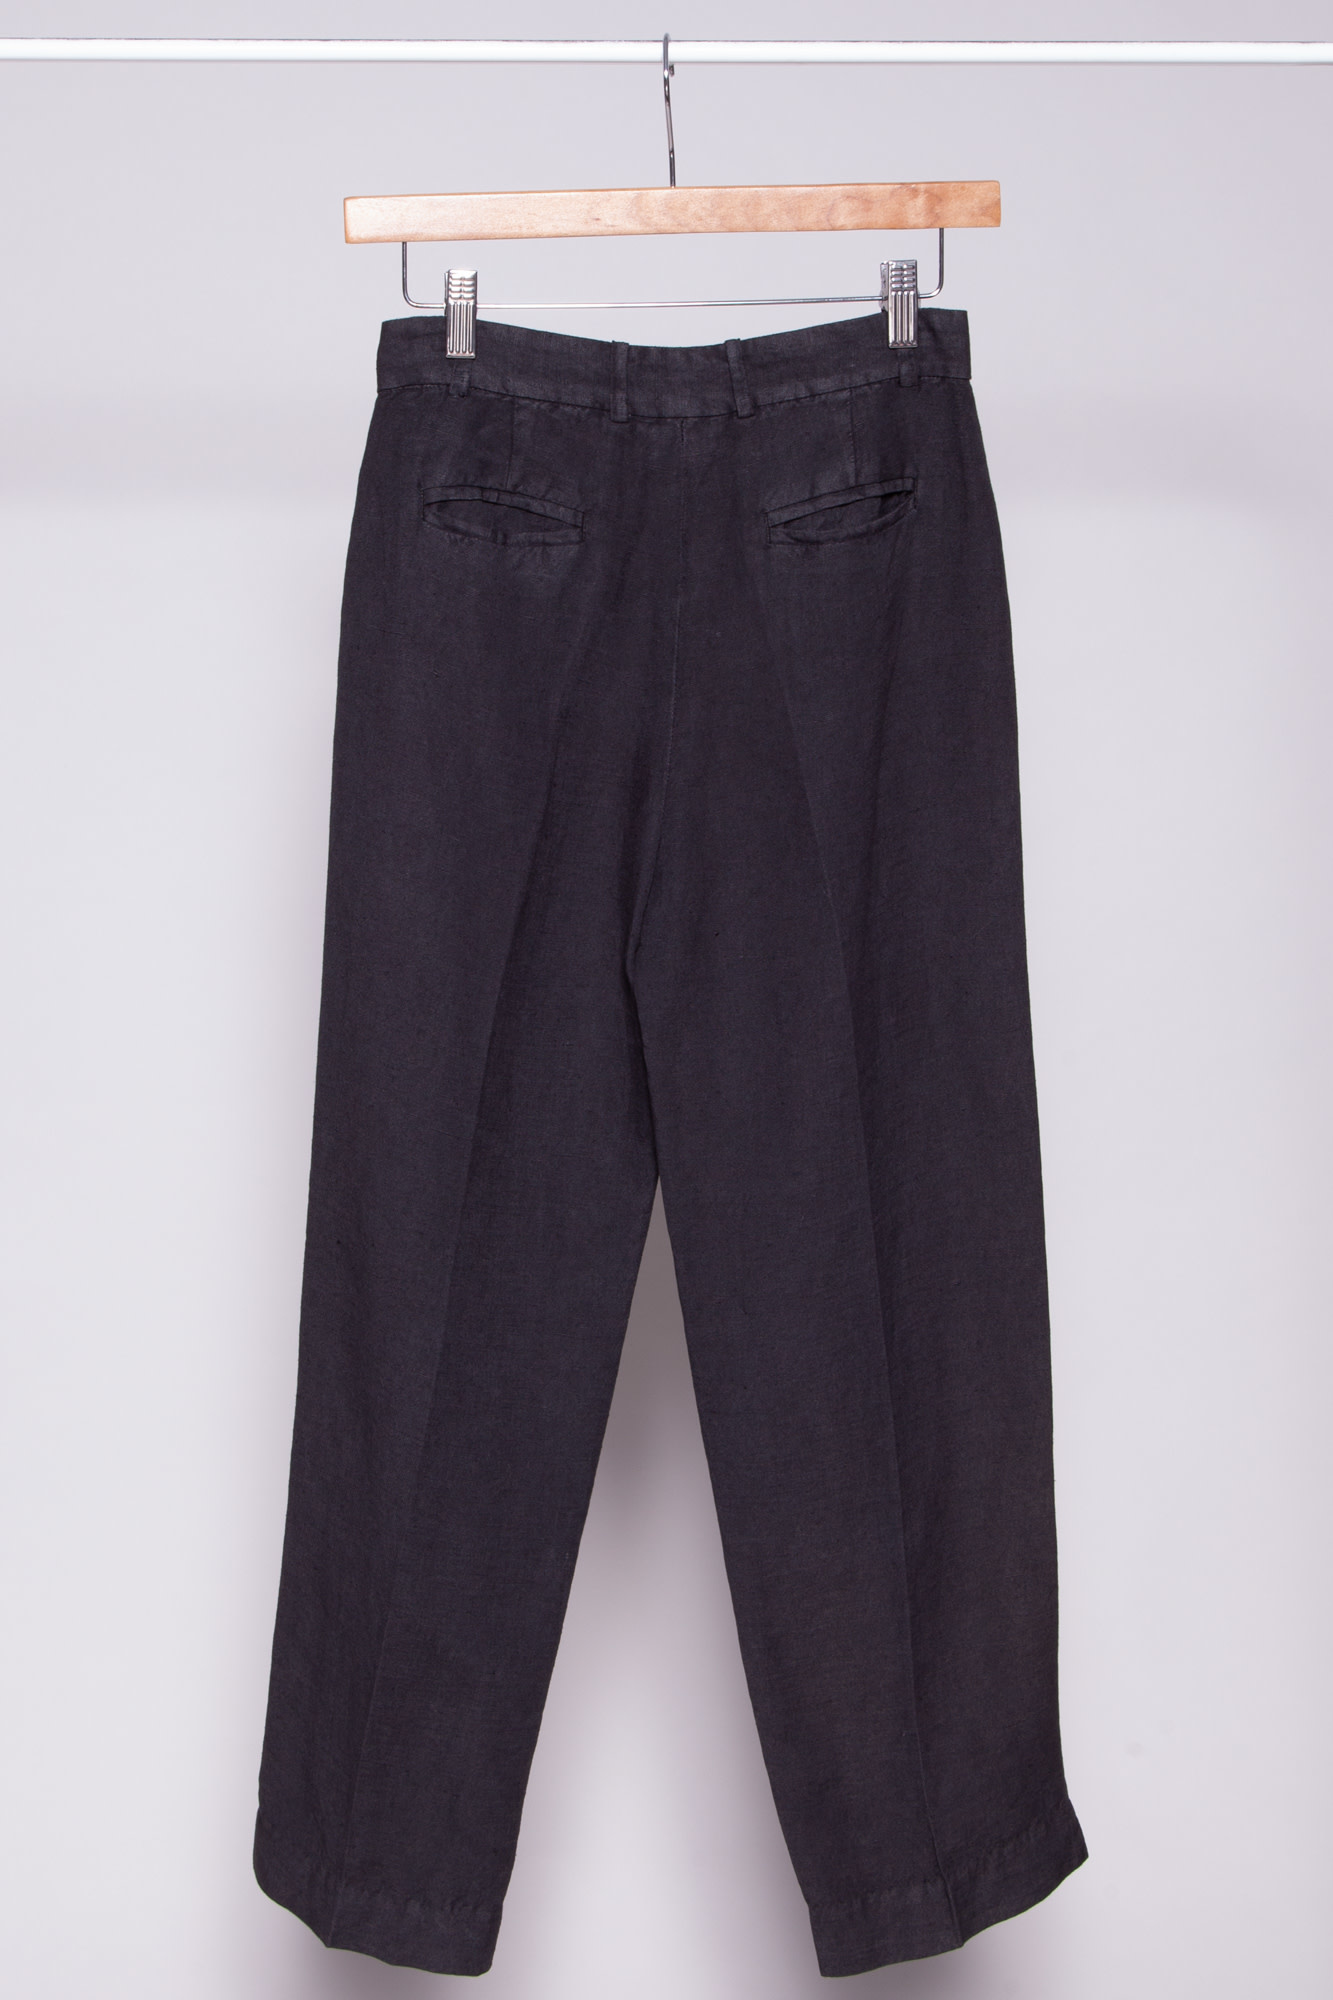 Rails CHARCOAL GREY TROUSERS - NEW WITH TAGS